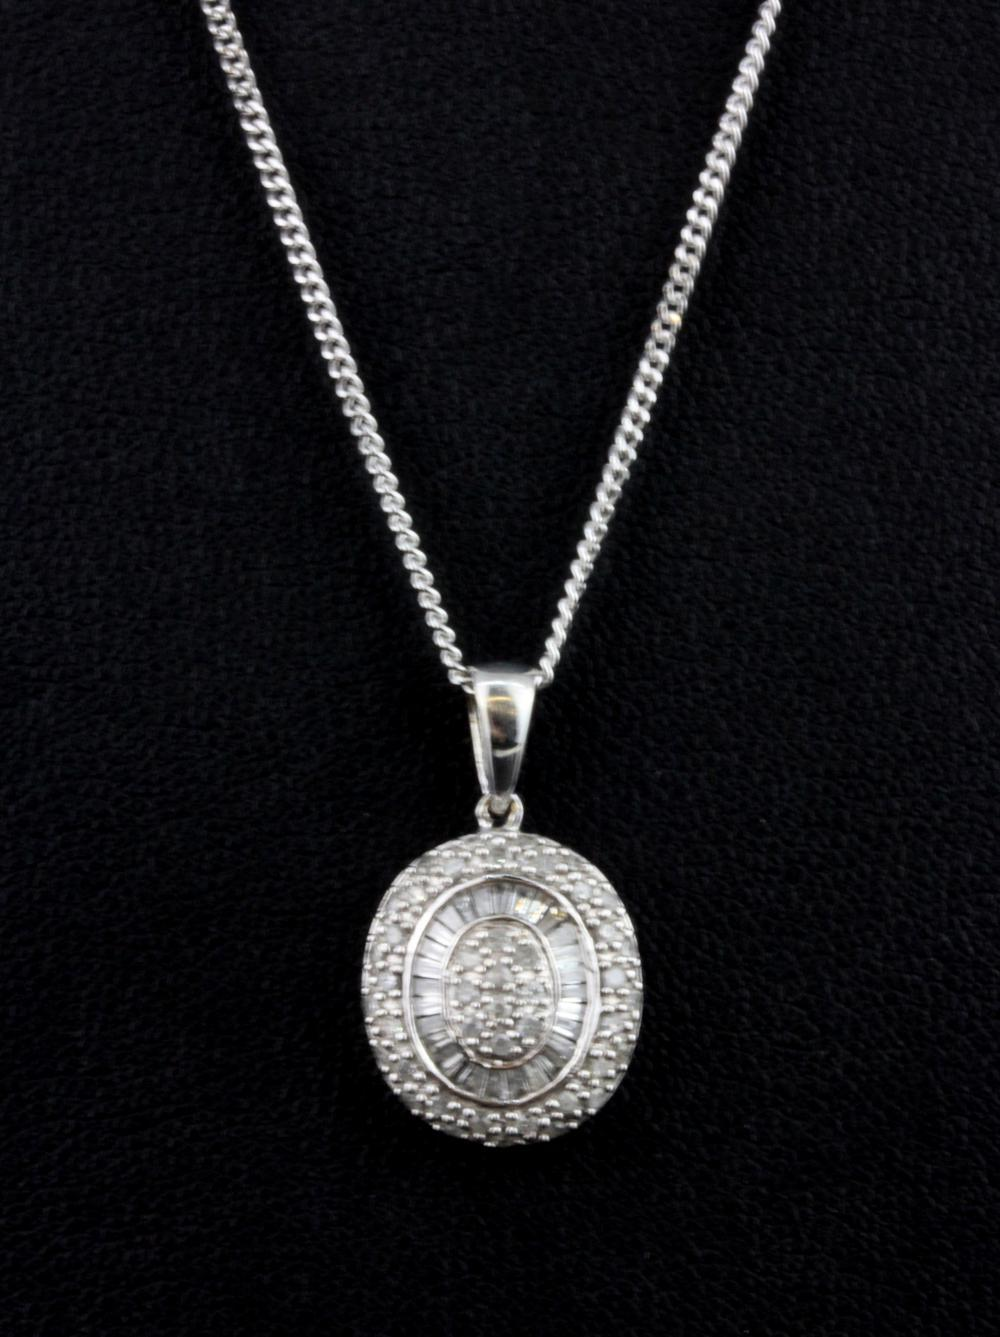 A 9ct white gold diamond set pendant and chain.